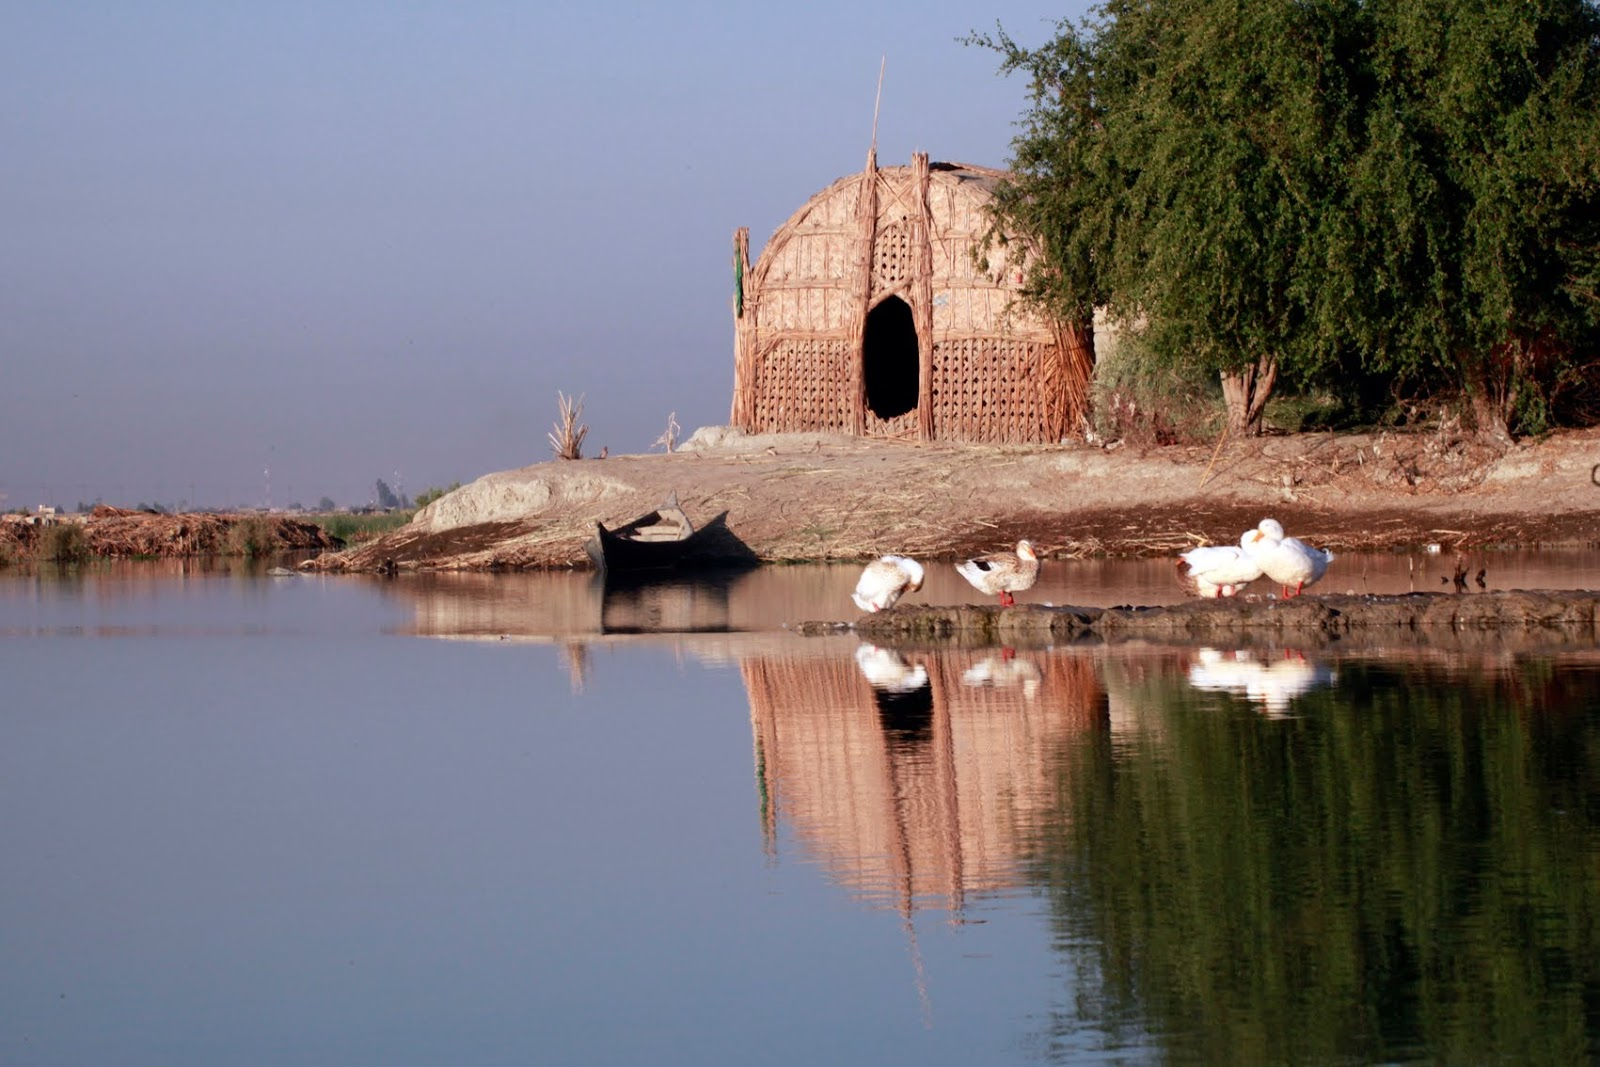 Iraqi marshes threatened